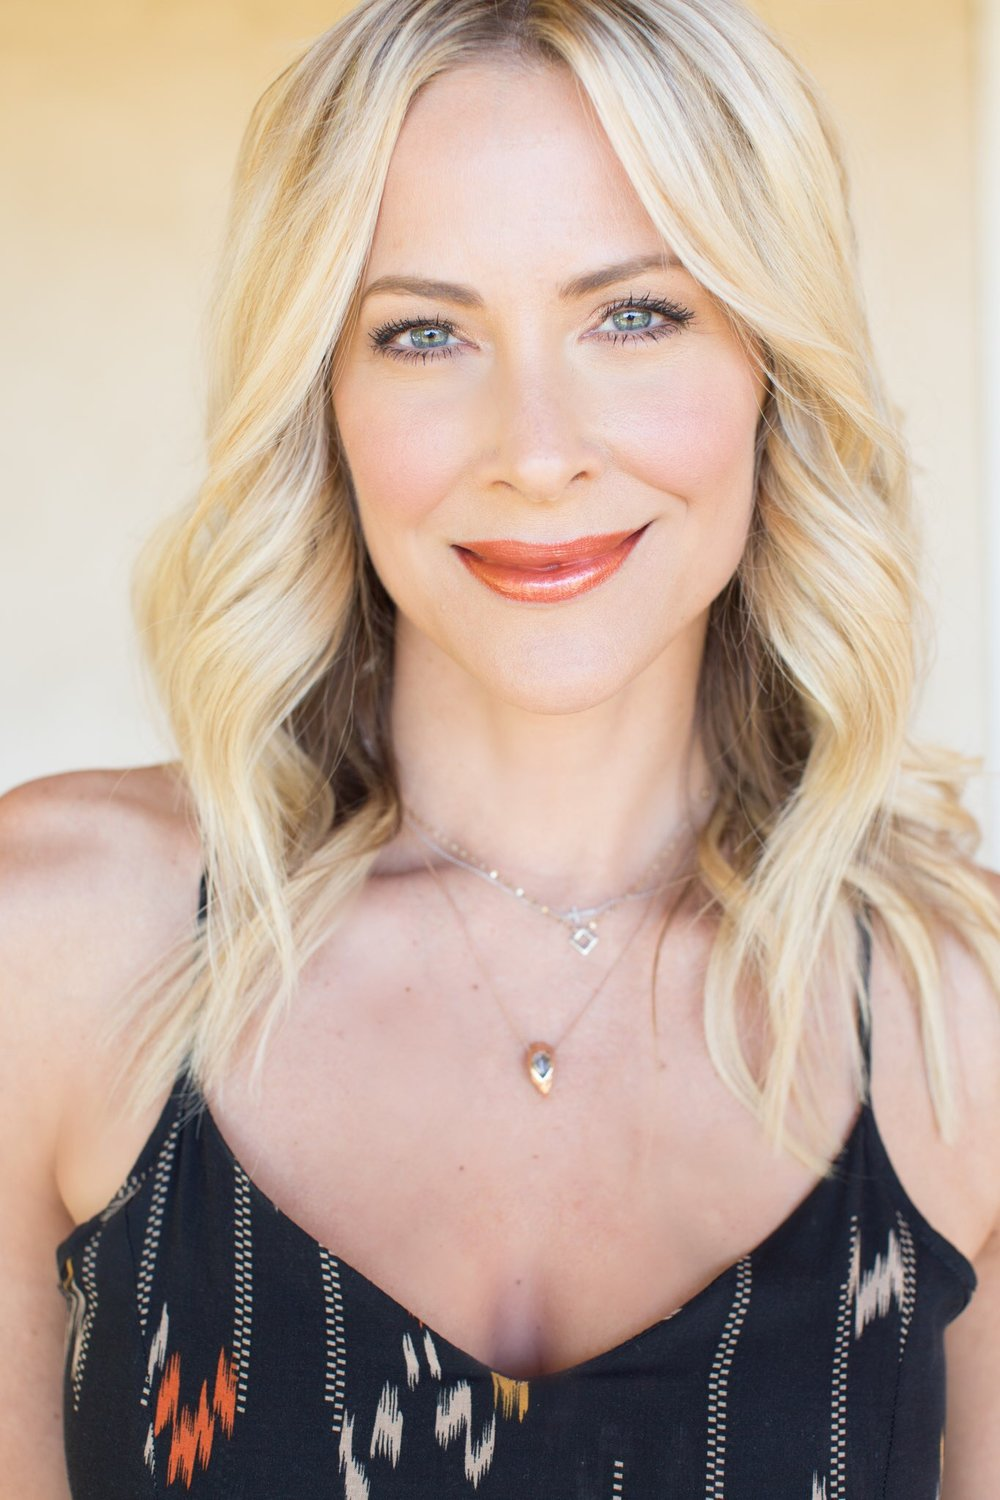 Brittany Daniel- Actress and Lifestyle Blogger - I've been an actress in Hollywood for 20 years and have experienced many different facials over the years. I just recently moved to the area and have found my favorite place for skin care. The HydraFacial by Terrie at Total Glow is unlike any facial I've ever had. After one session my skin had a beautiful glow and appeared much healthier and younger.Thank you Total Glow for for all your knowledge and attention.